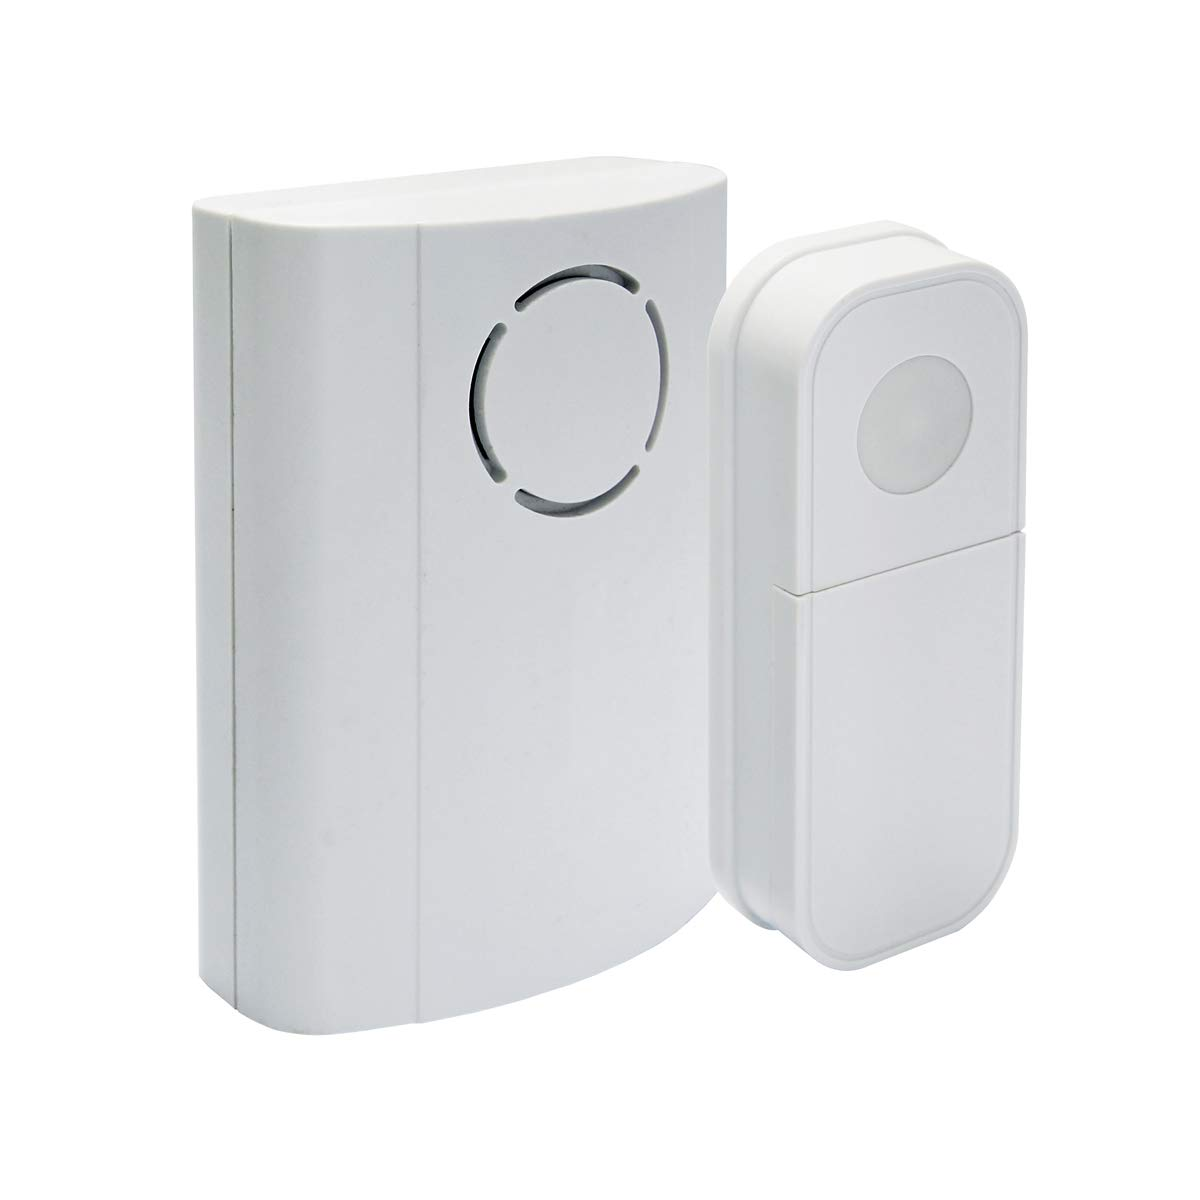 WD1020 Battery Operated Wireless Door Chime with button